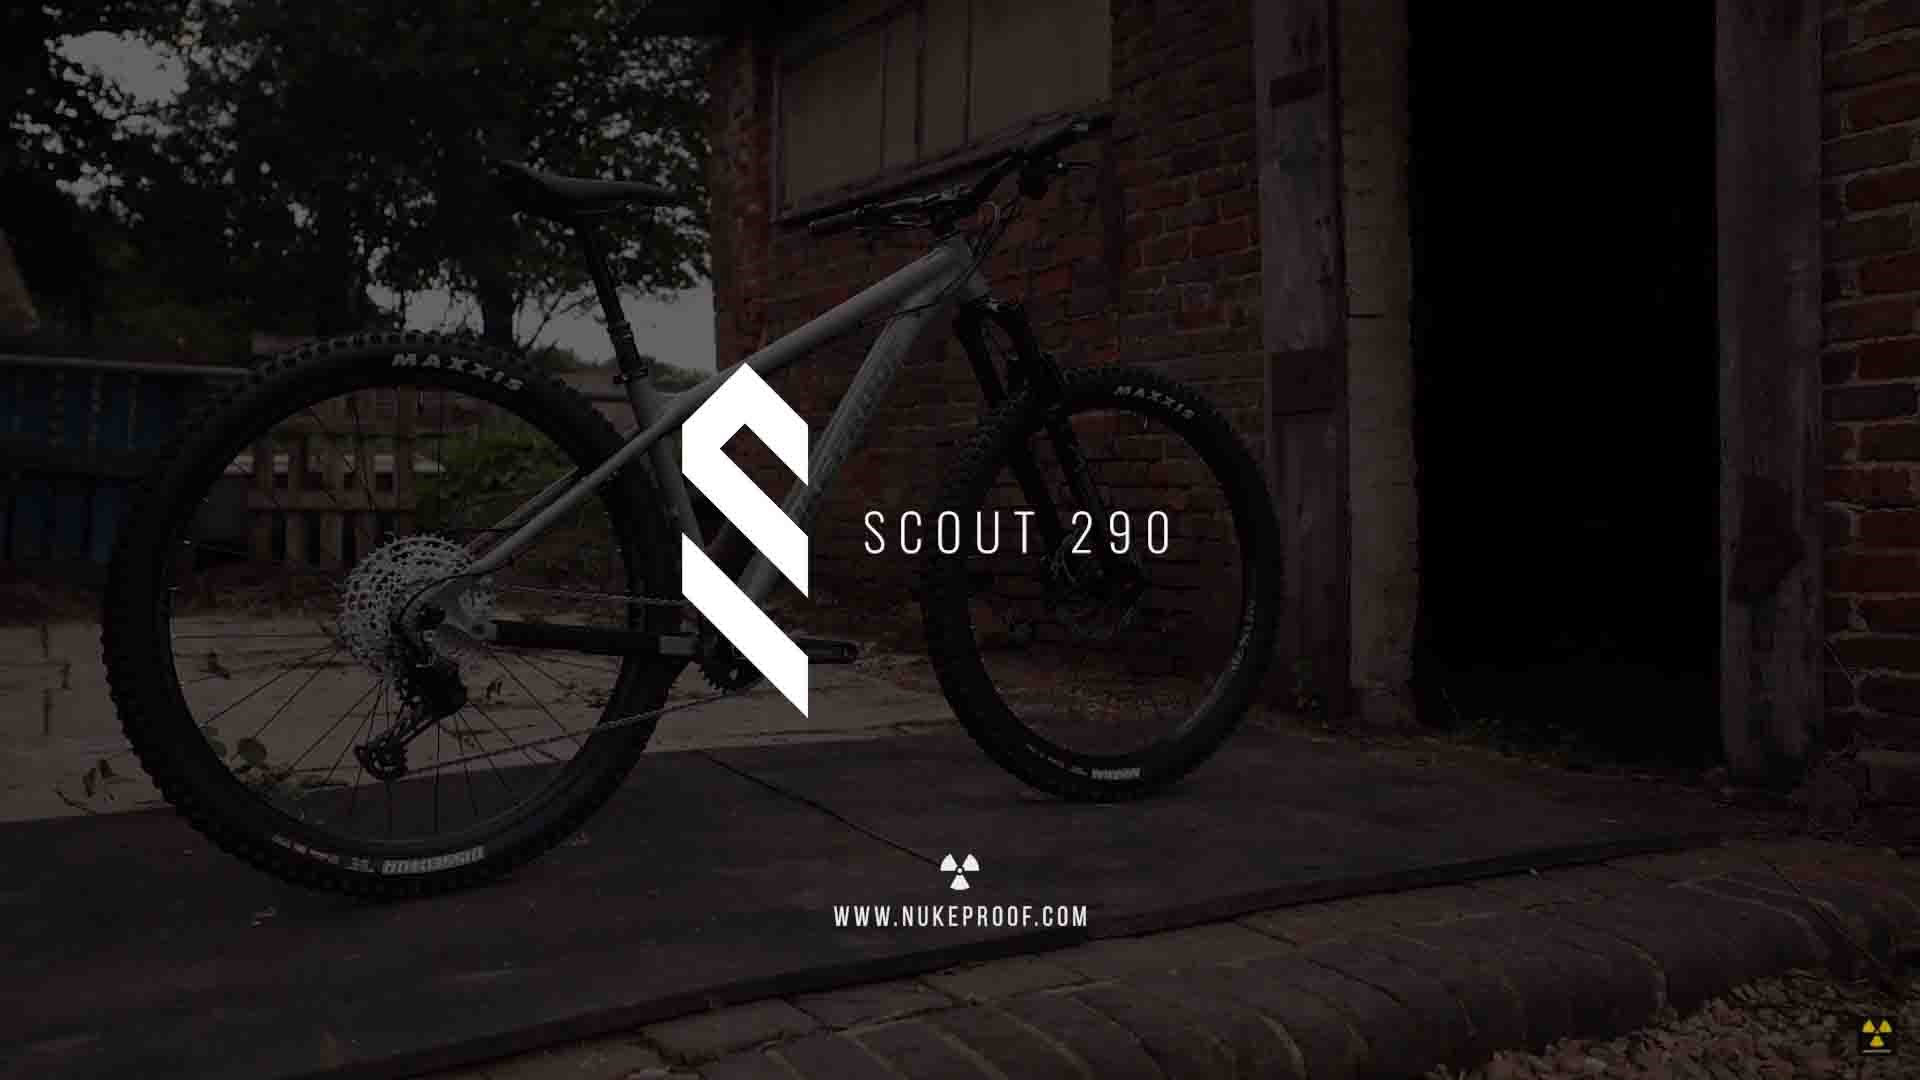 Nukeproof Scout 290 2021